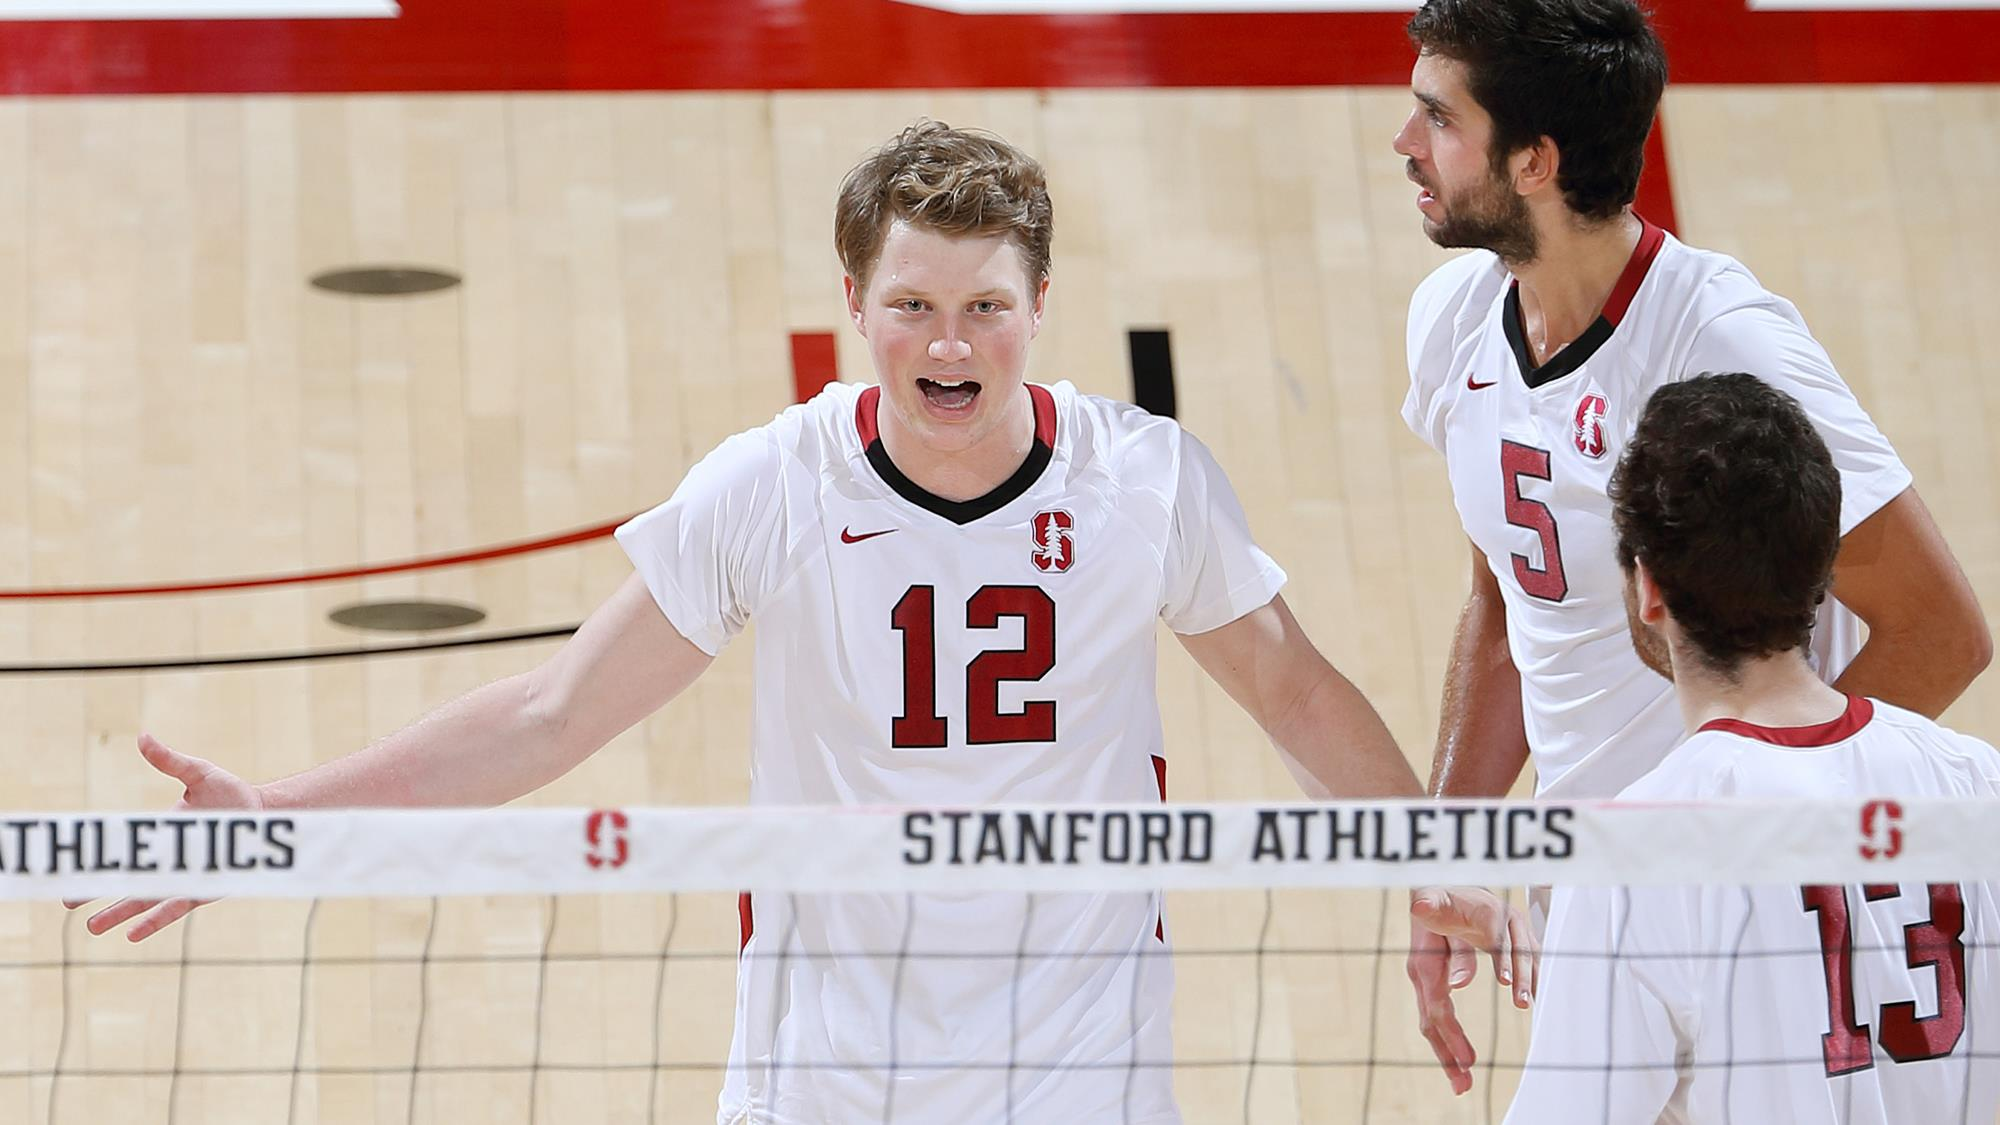 eek stanford mens volleyball - HD2000×1125